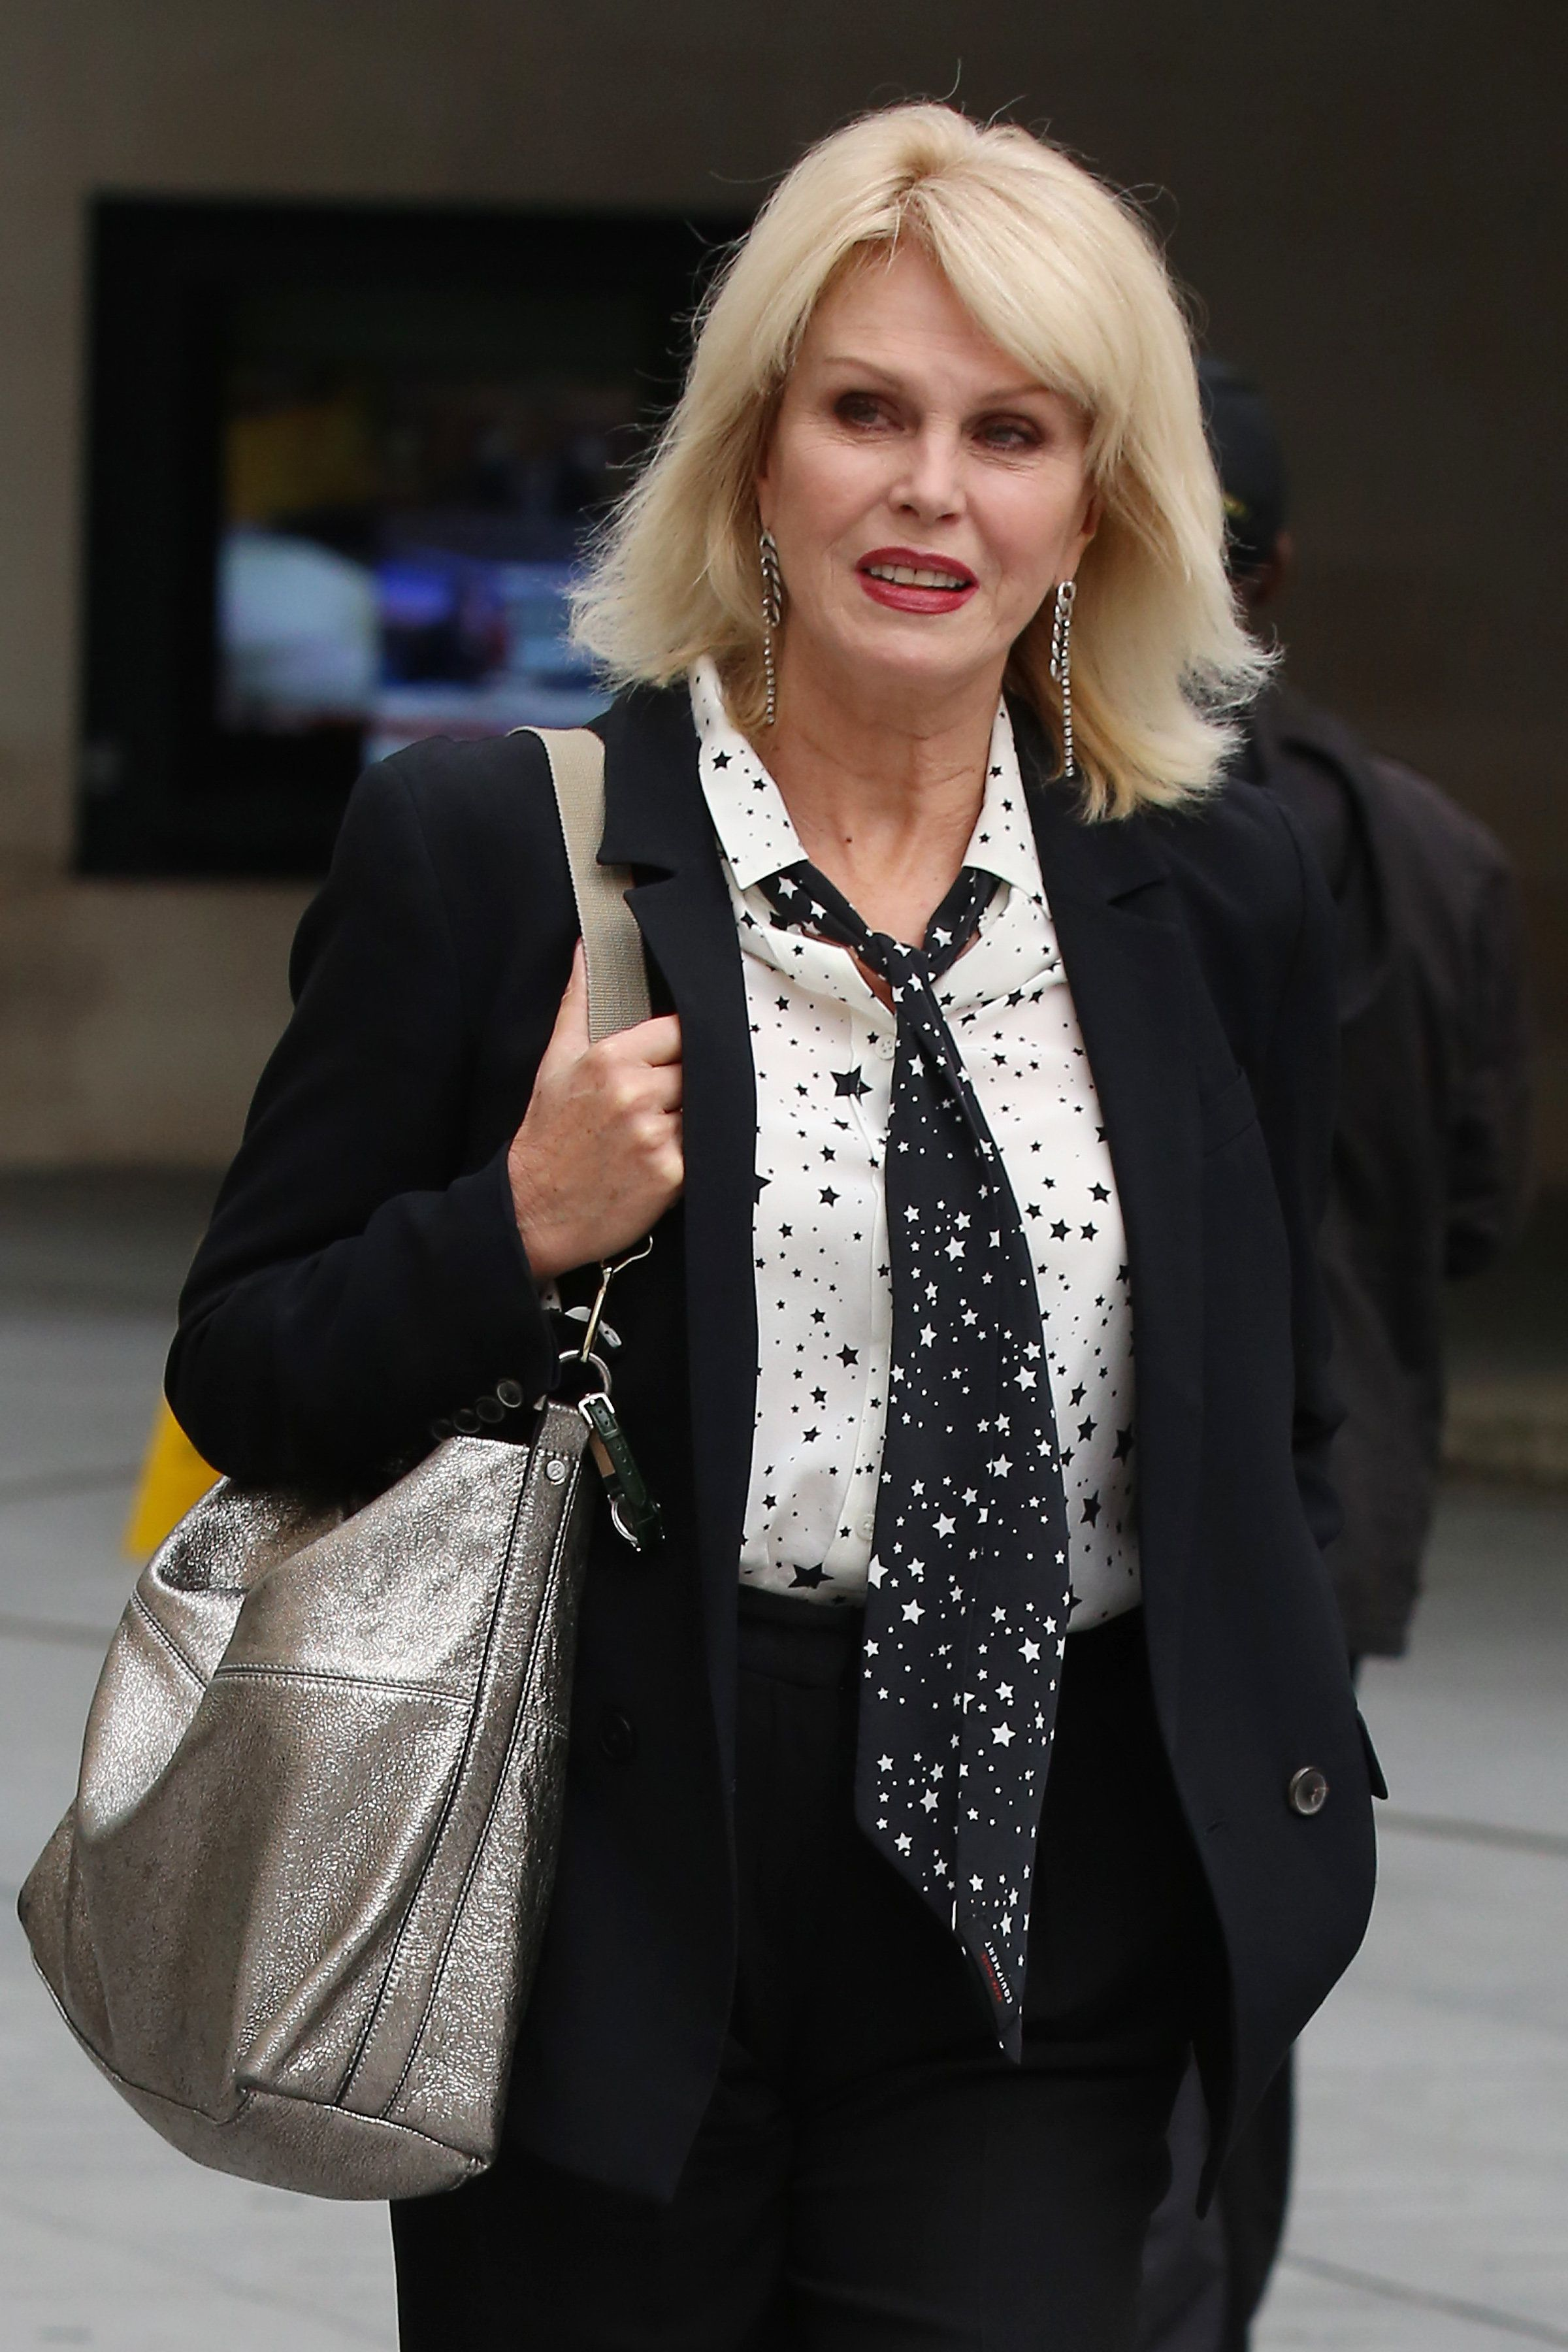 Joanna Lumley Defends Brexit Supporters, Insisting The Majority Are Not 'Cruel And